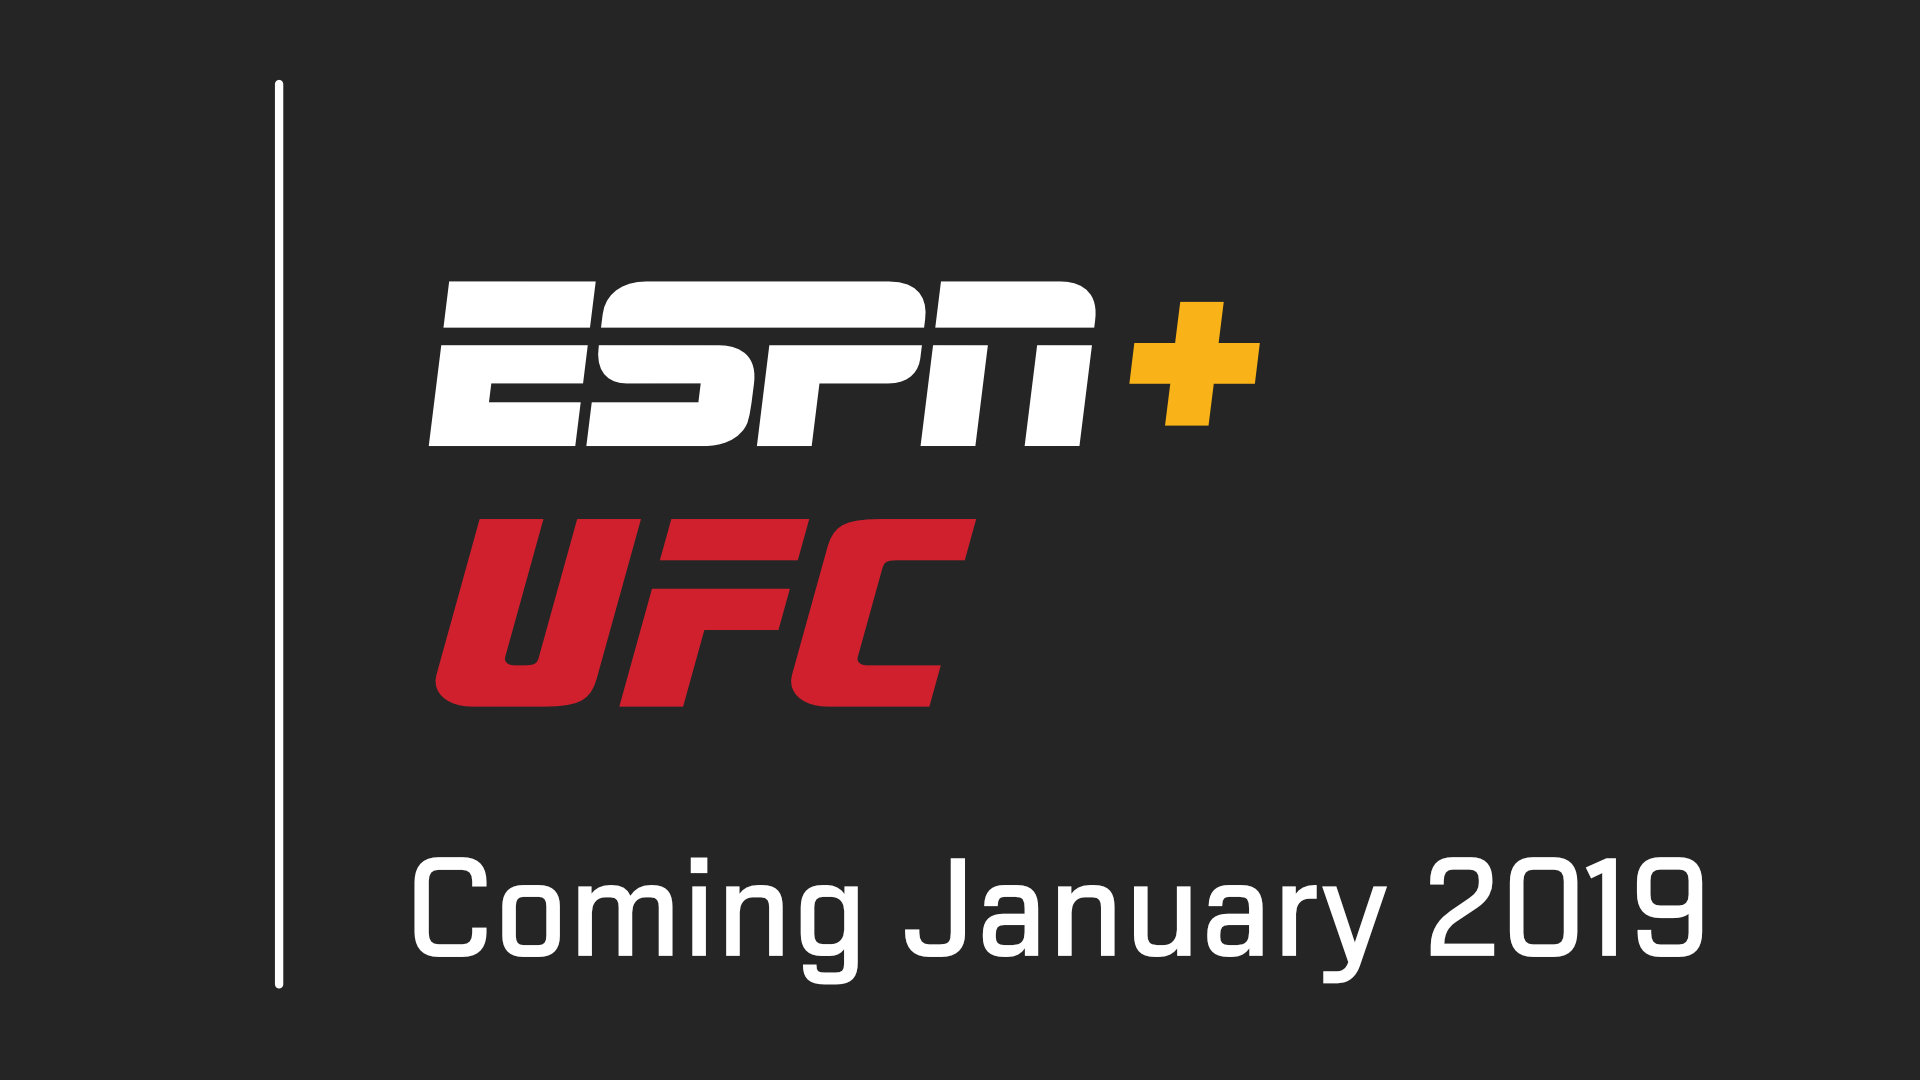 UFC's schedule up to June 2019 - Fight